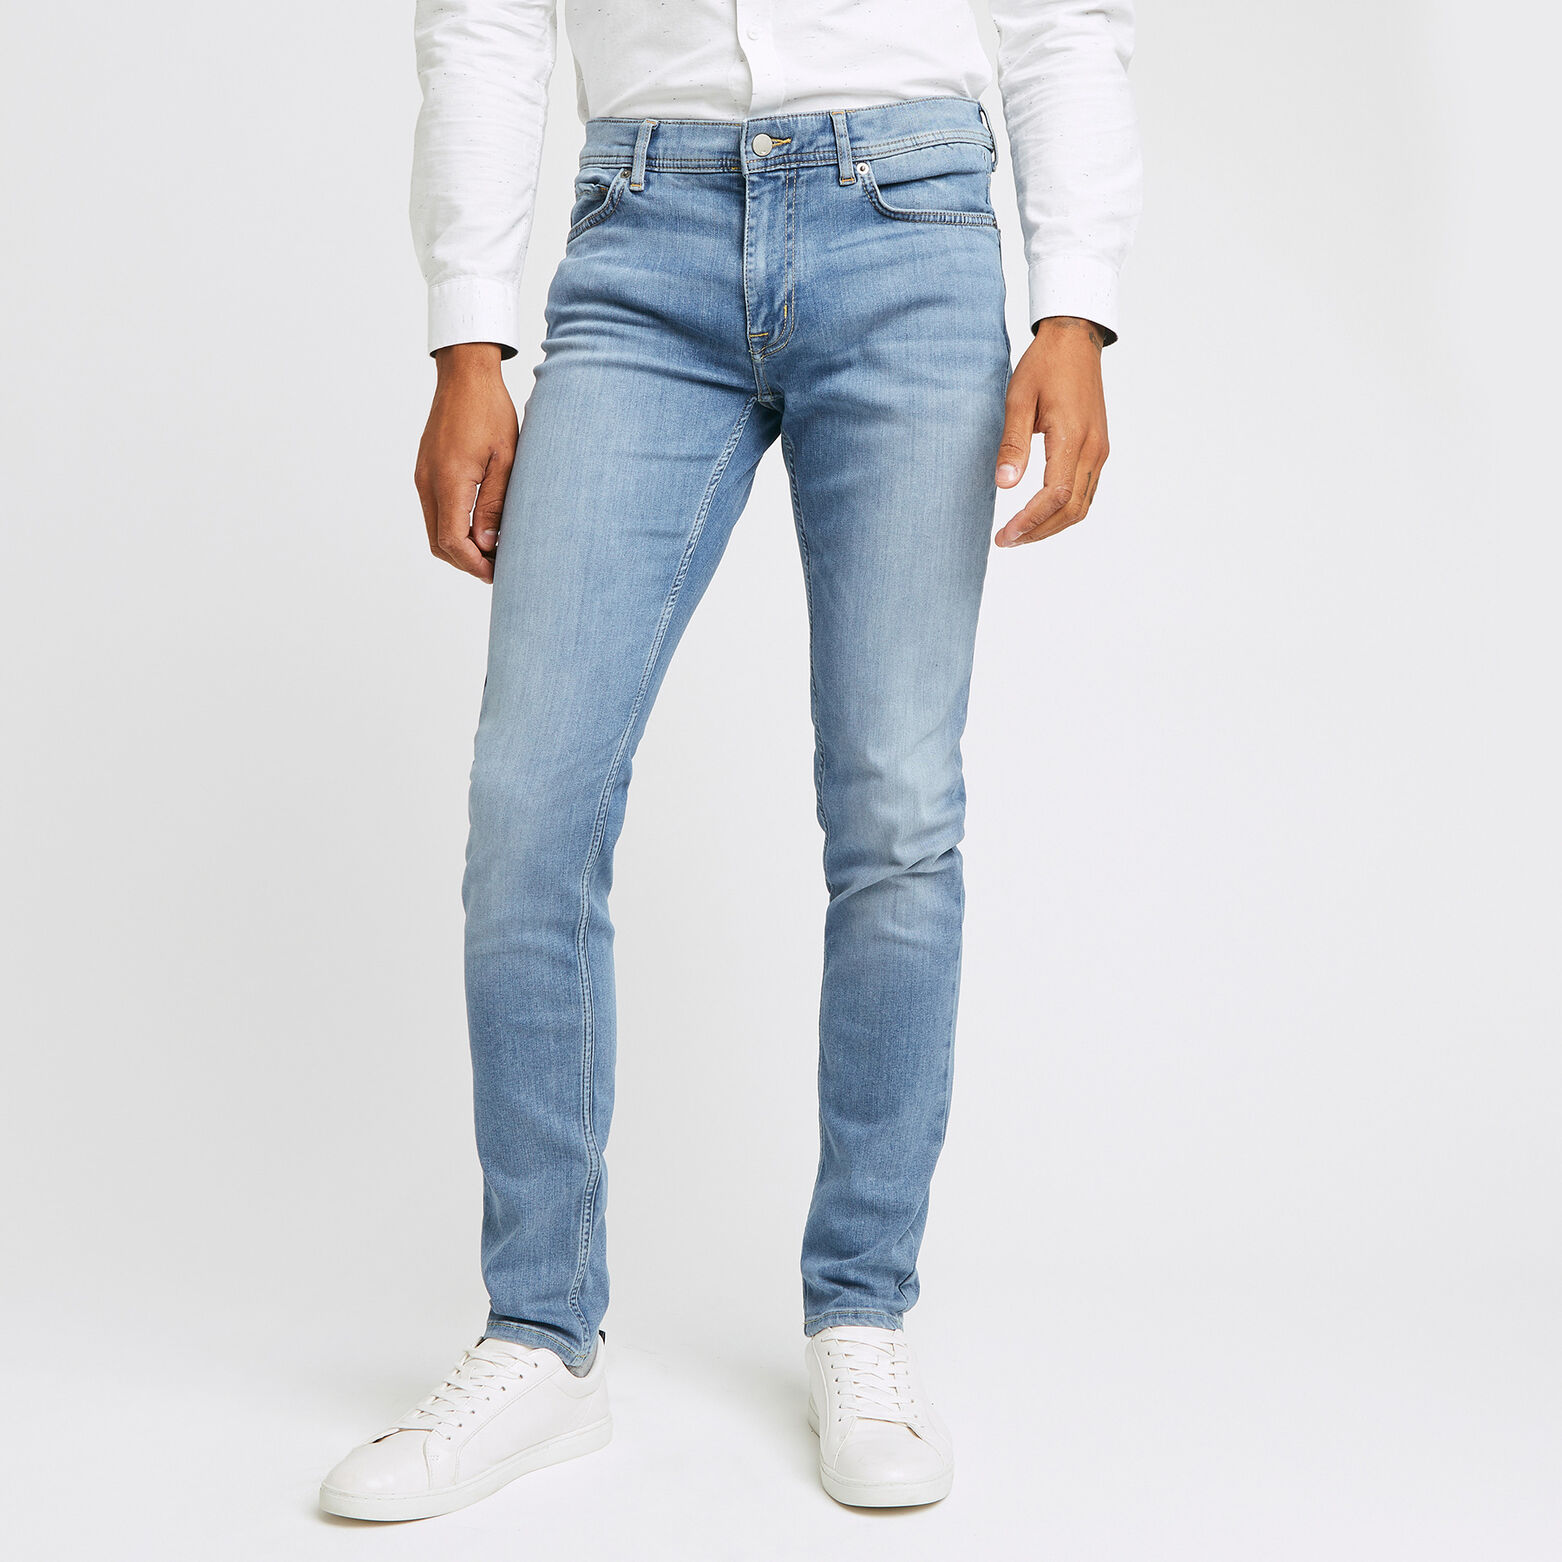 Jean slim #Tom urbanflex 4 longueurs bleach